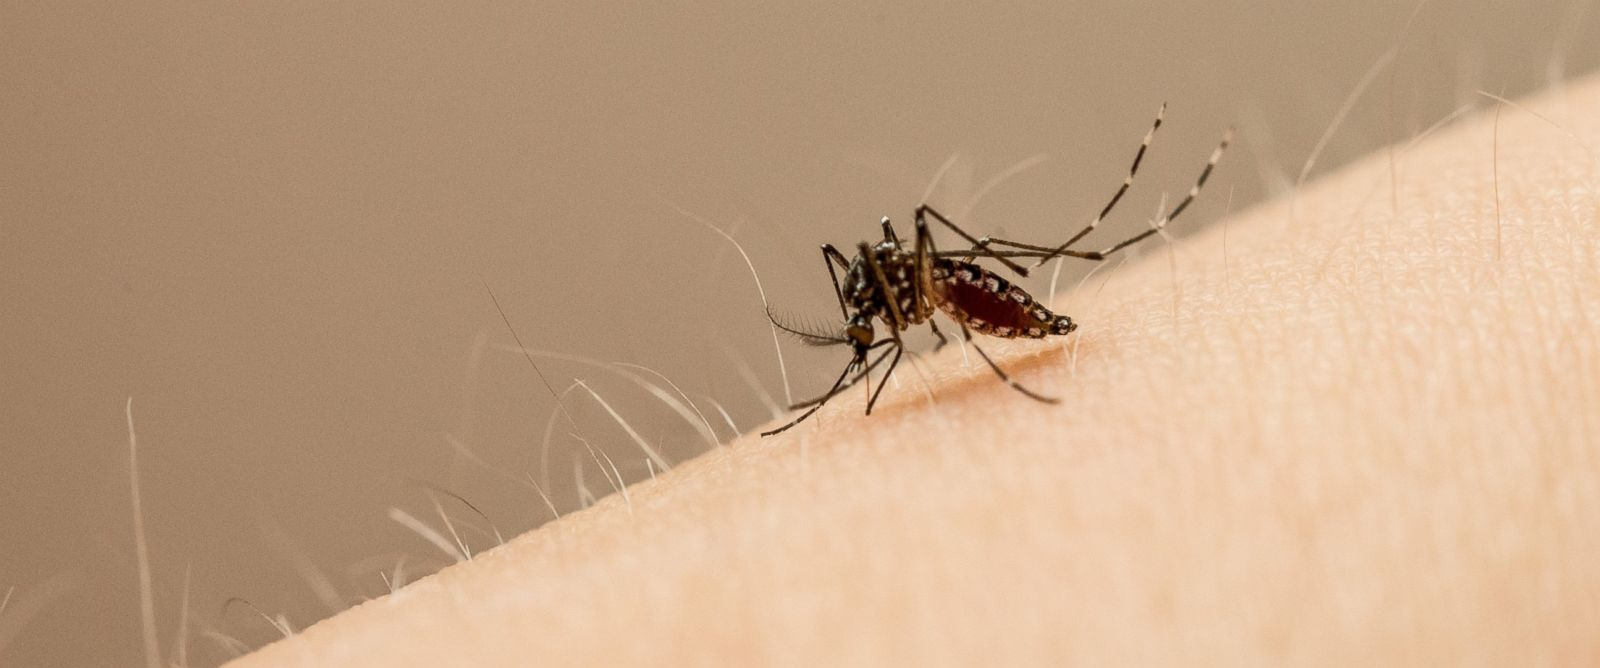 Single mosquito bite might be enough to transmit multiple viruses, study finds